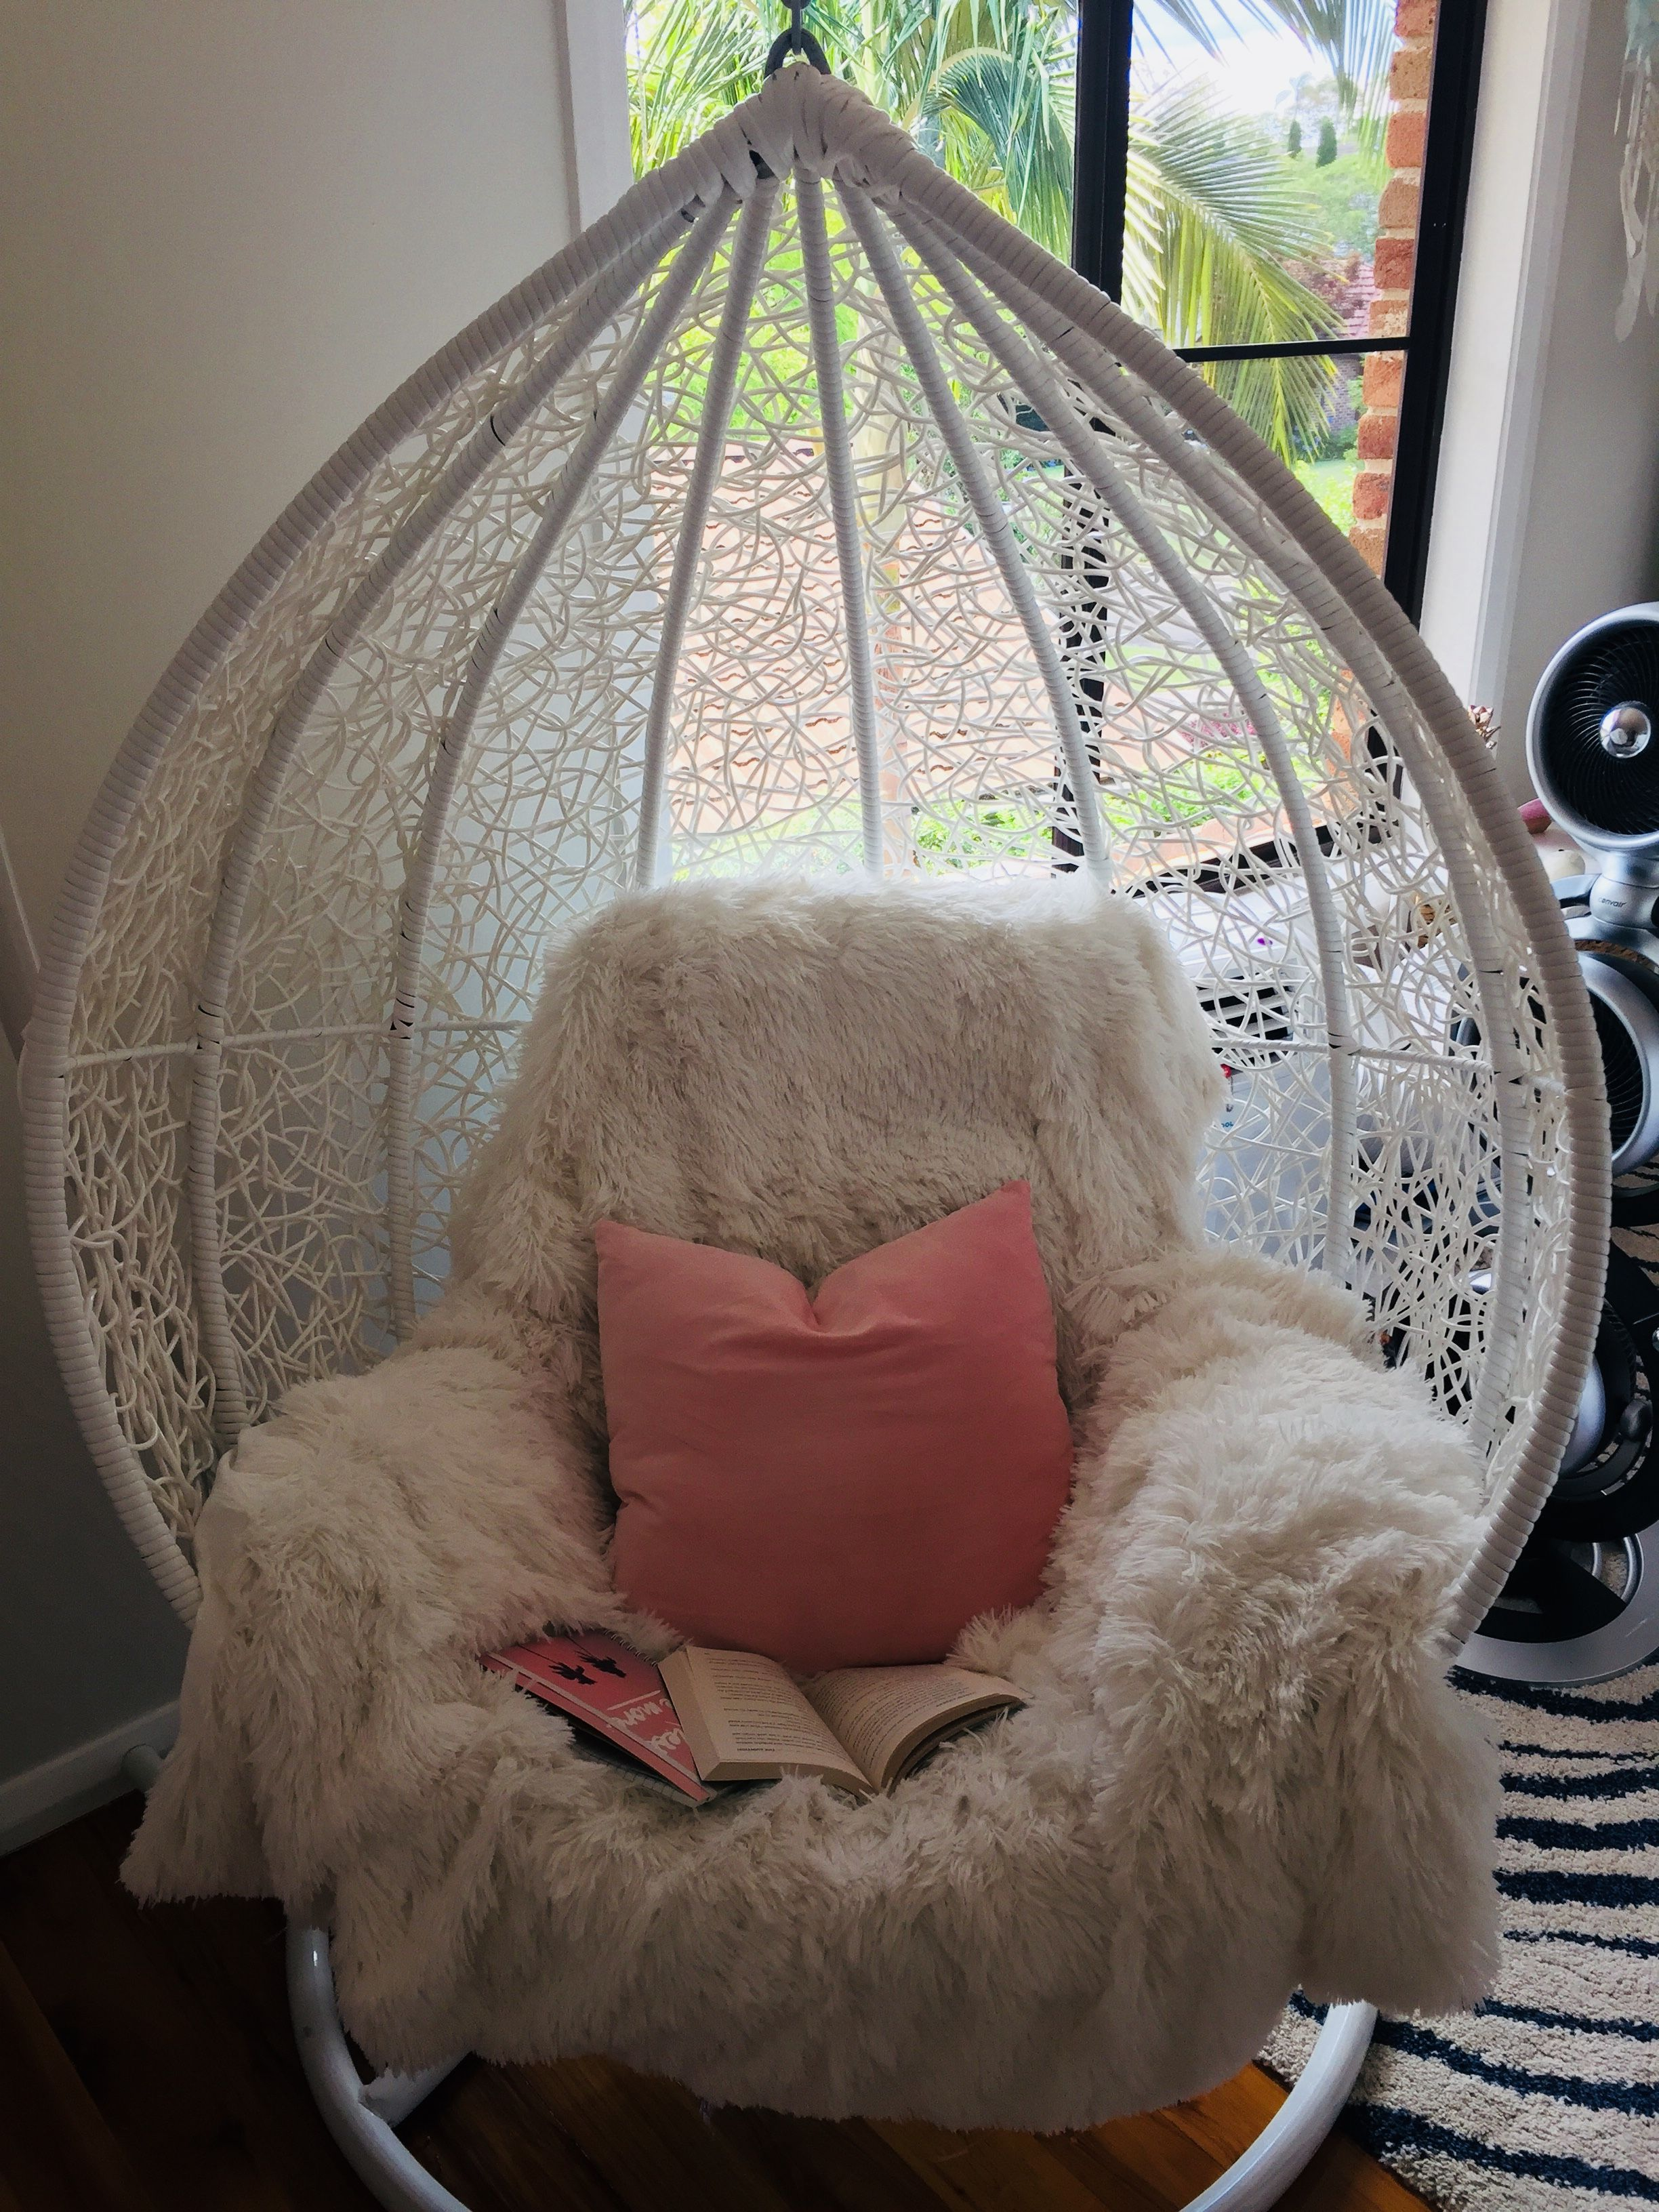 Egg chair room designs sitting room chairs hanging